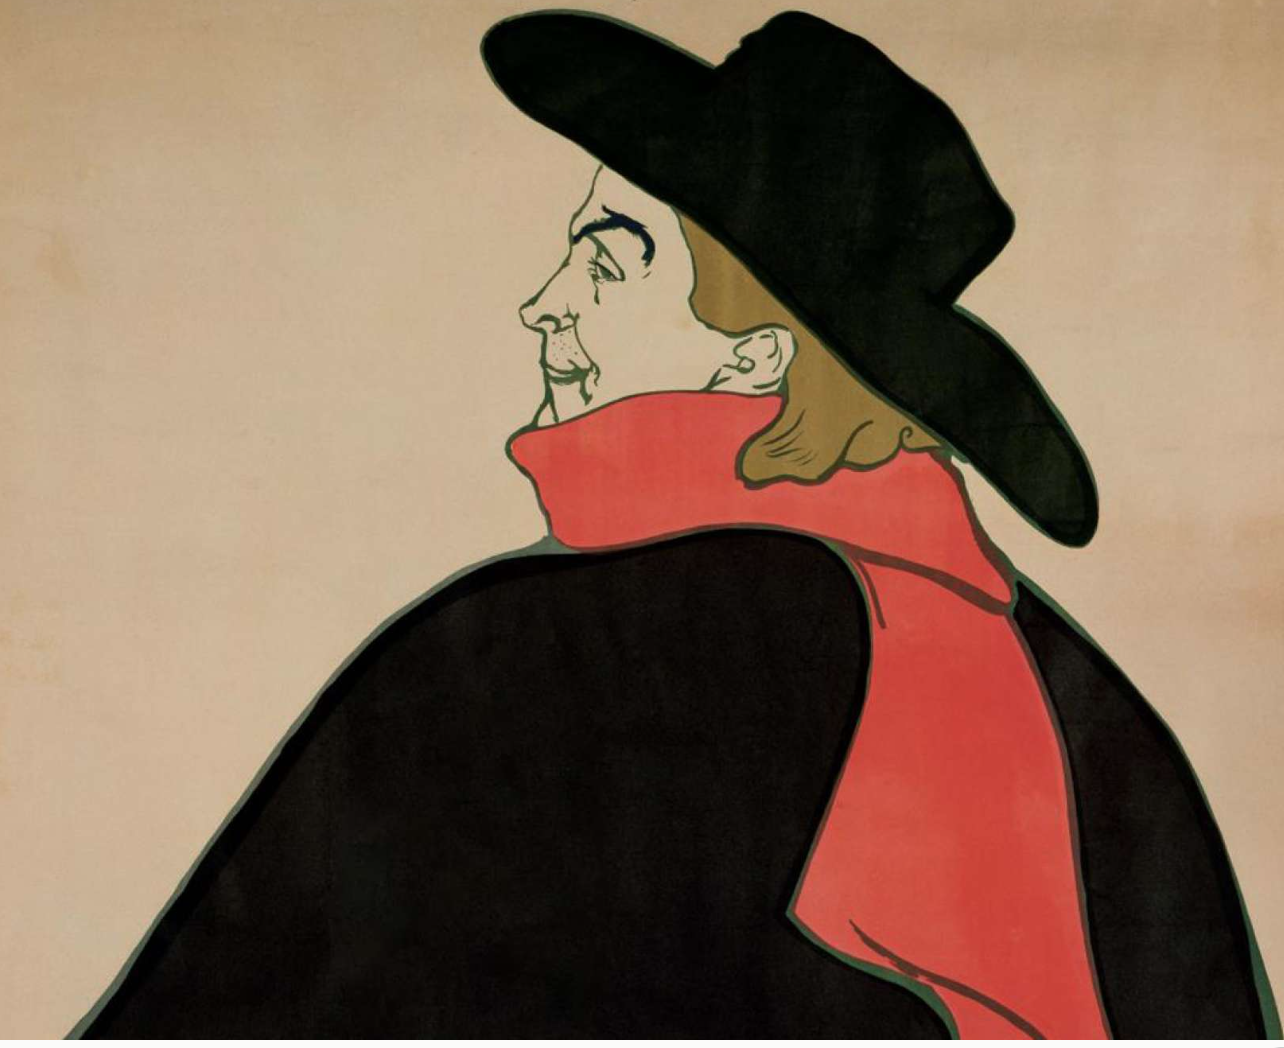 Holders of a BPL card can visit the Museum of Fine Arts for free the entire month of June and view the Toulouse-Lautrec exhibit that includes more than 100 prints owned by the Boston Public Library